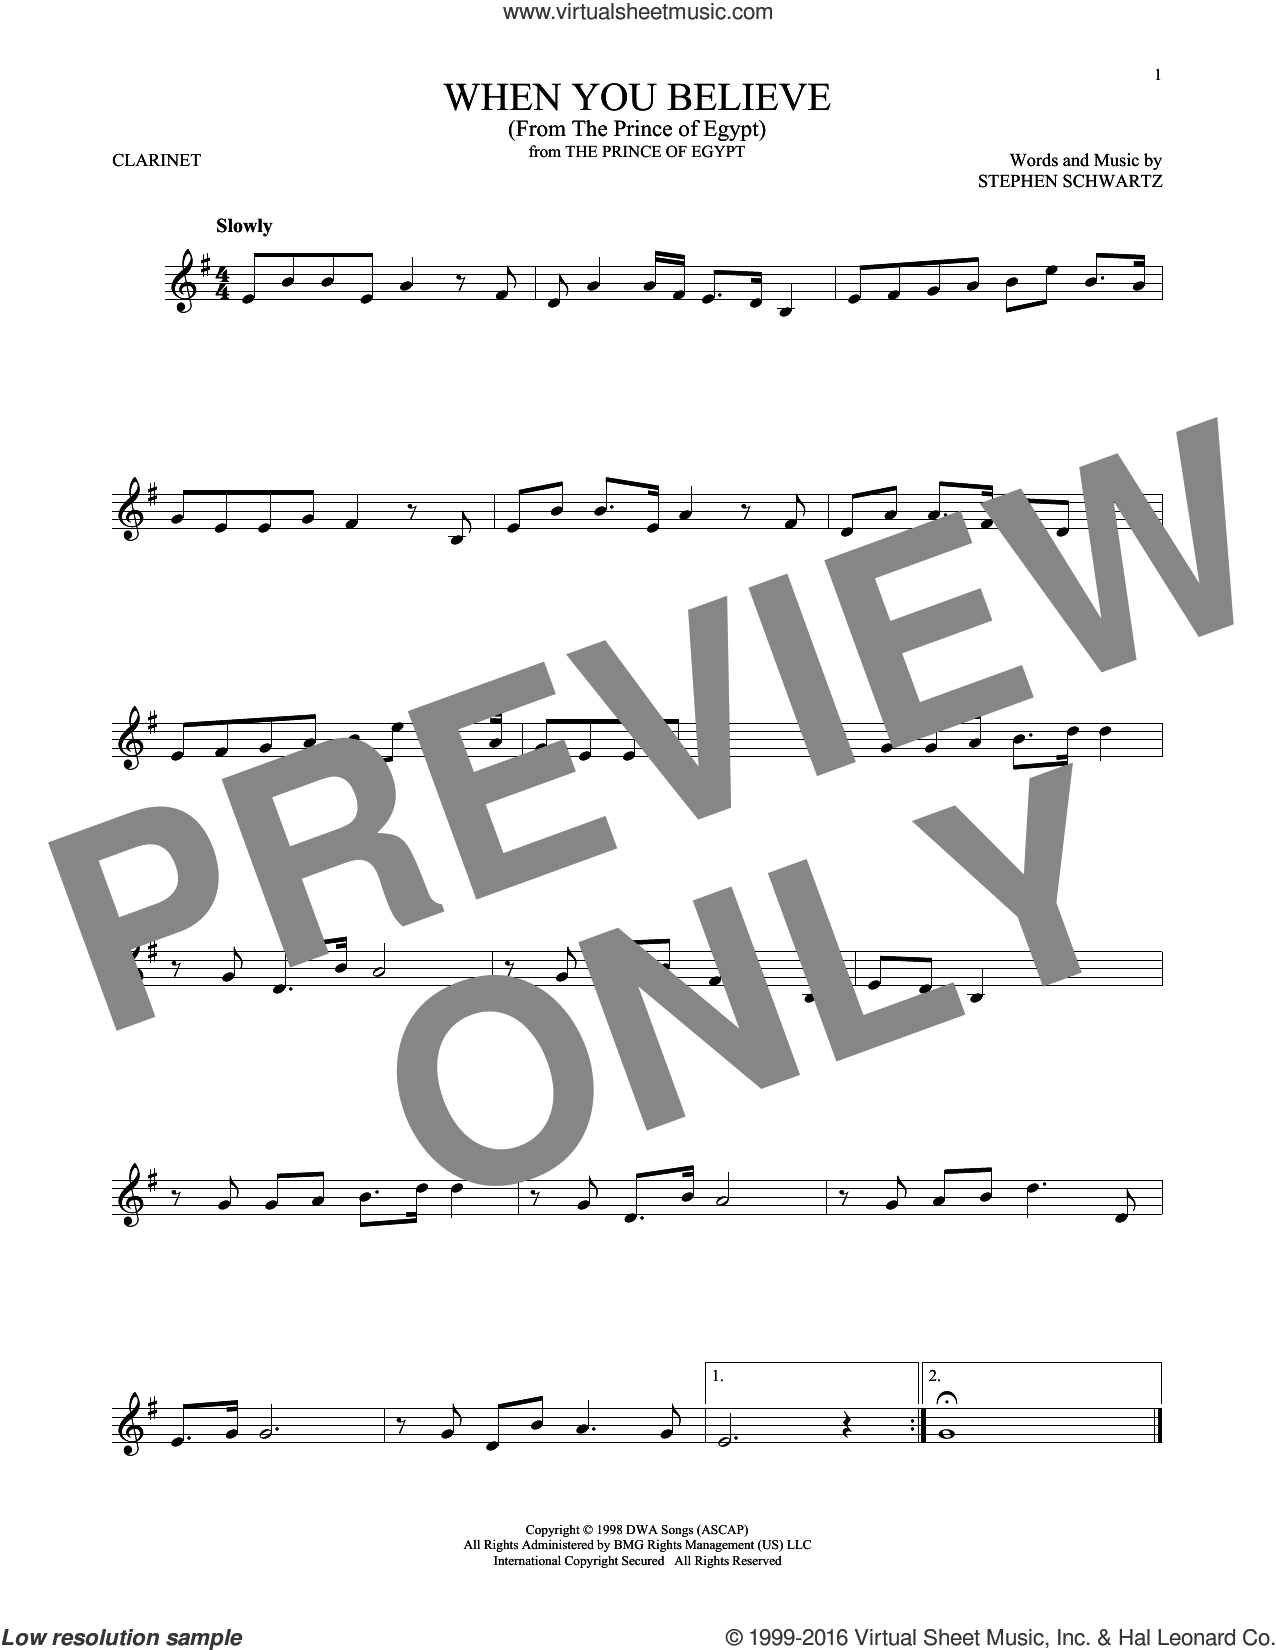 When You Believe sheet music for clarinet solo by Stephen Schwartz. Score Image Preview.